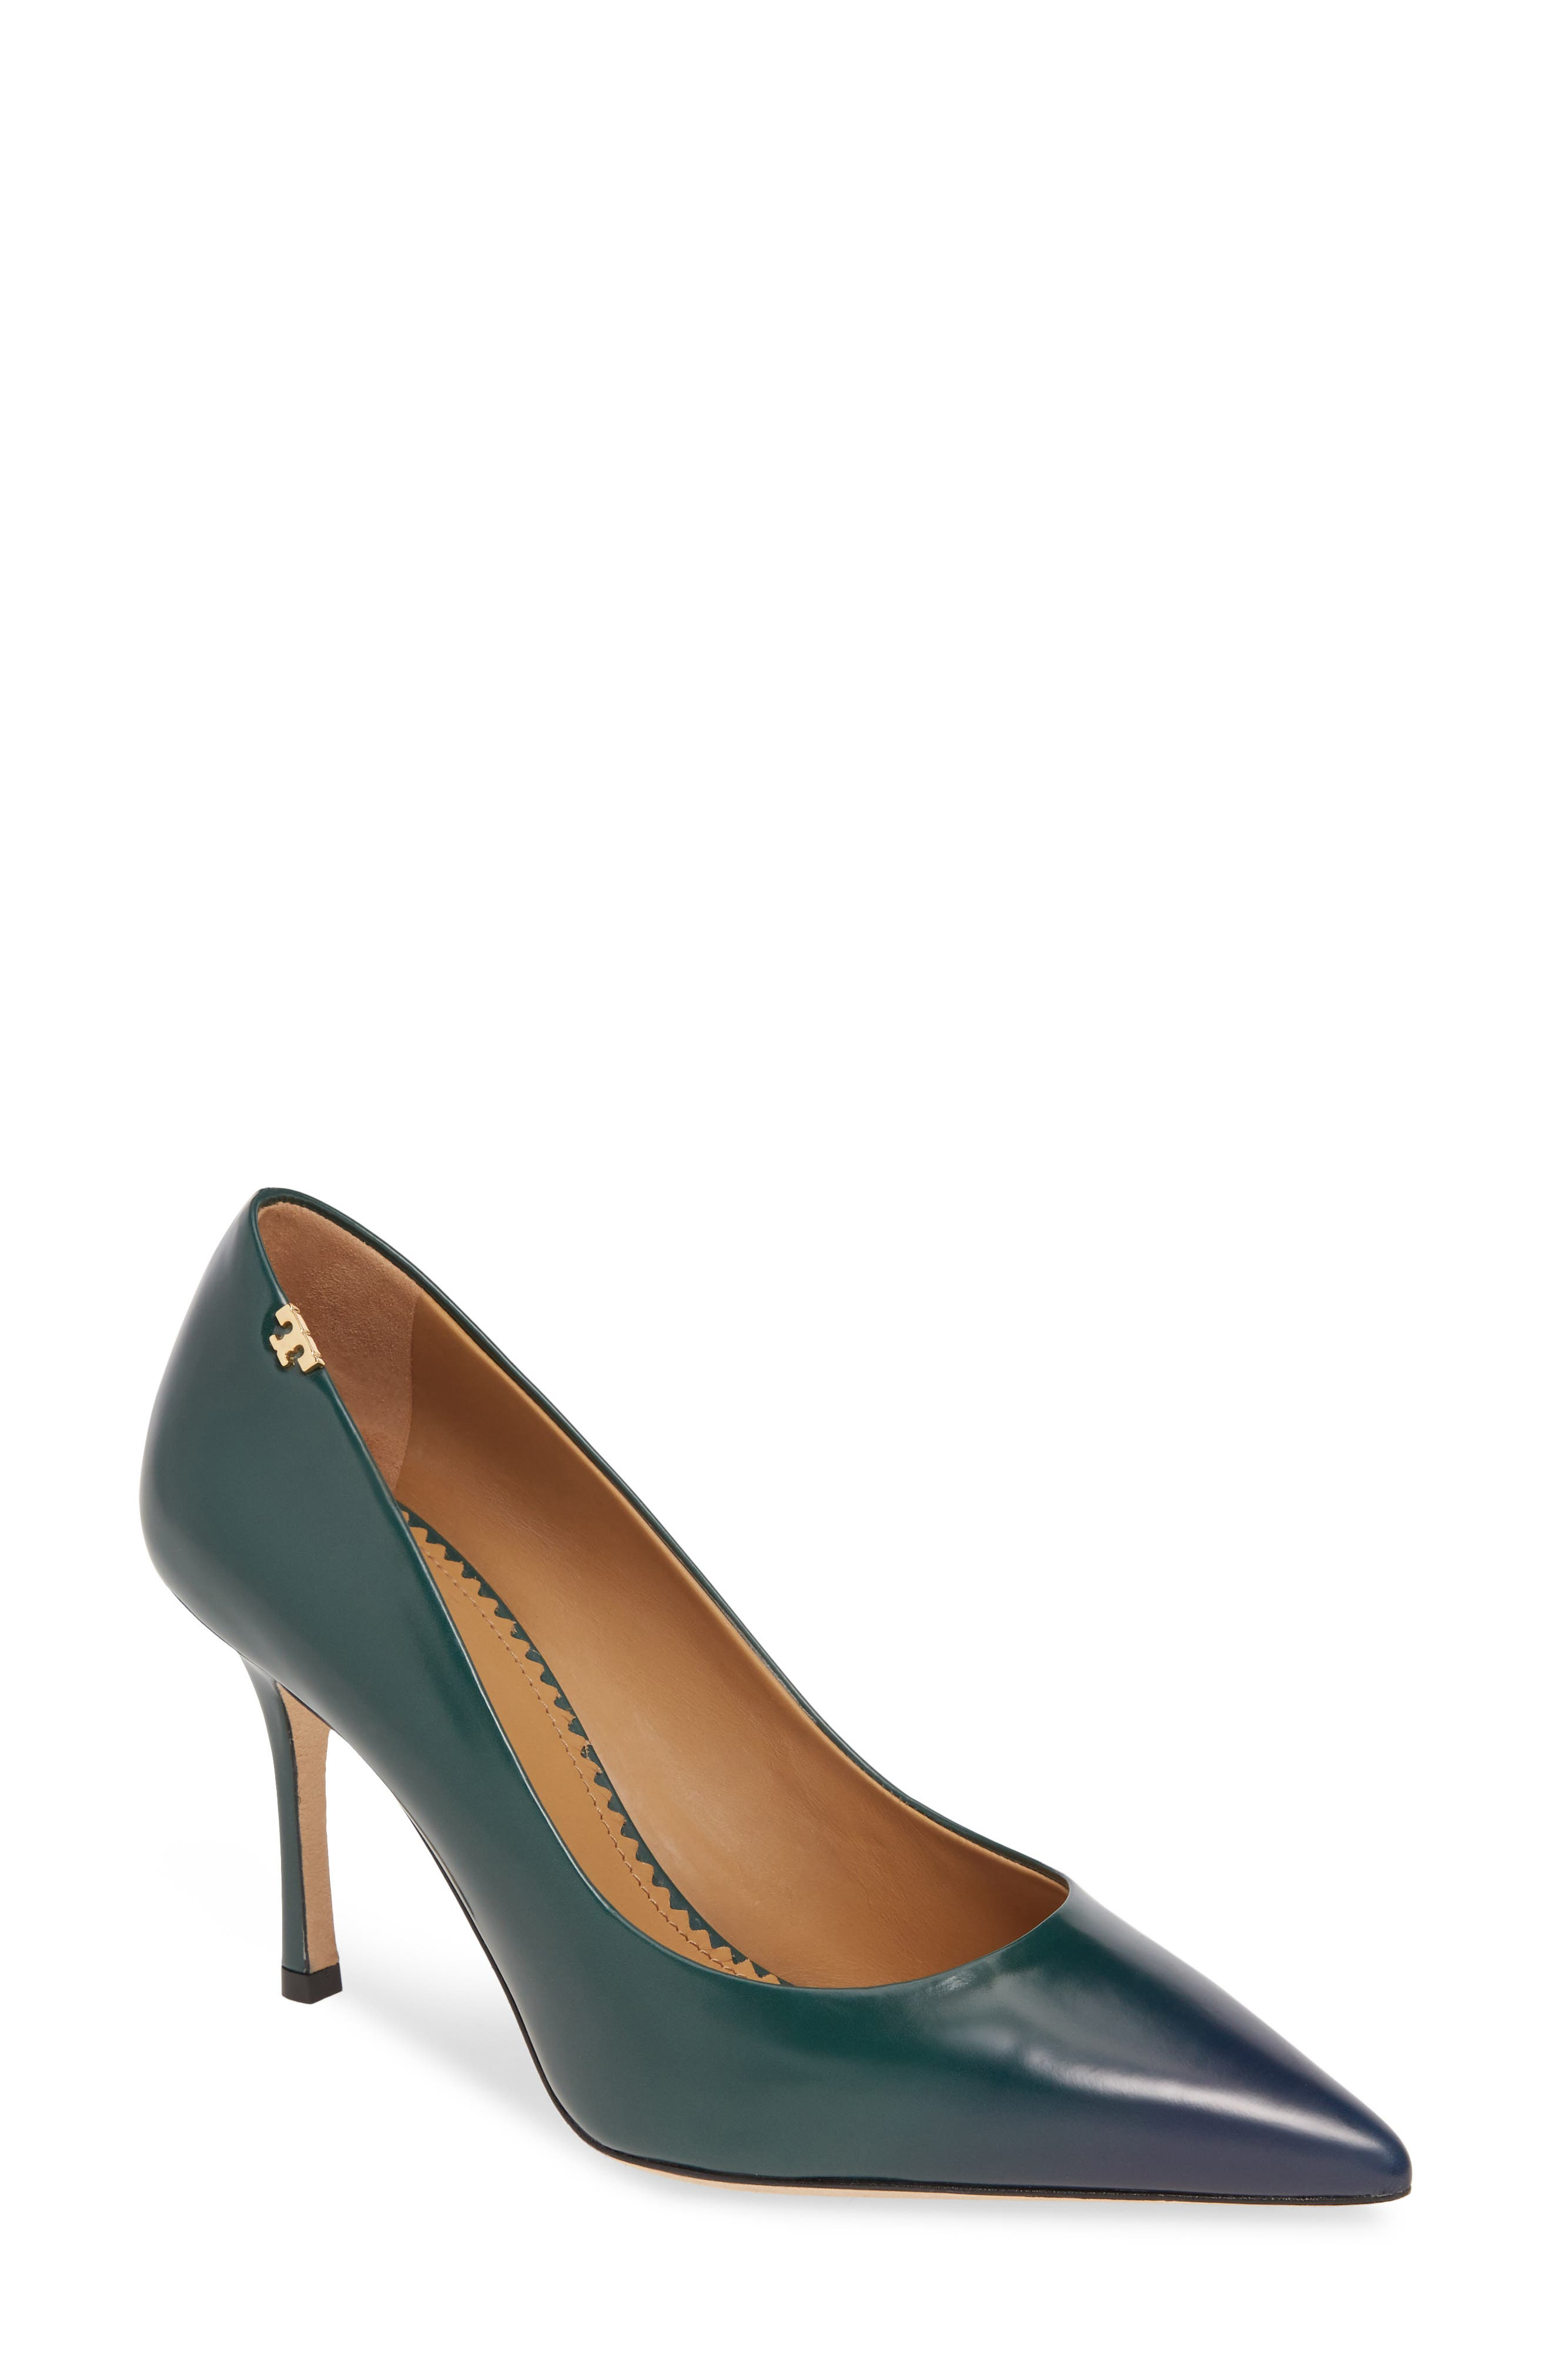 Tory Burch Penelope Ombre Pointy Toe Pump, Green